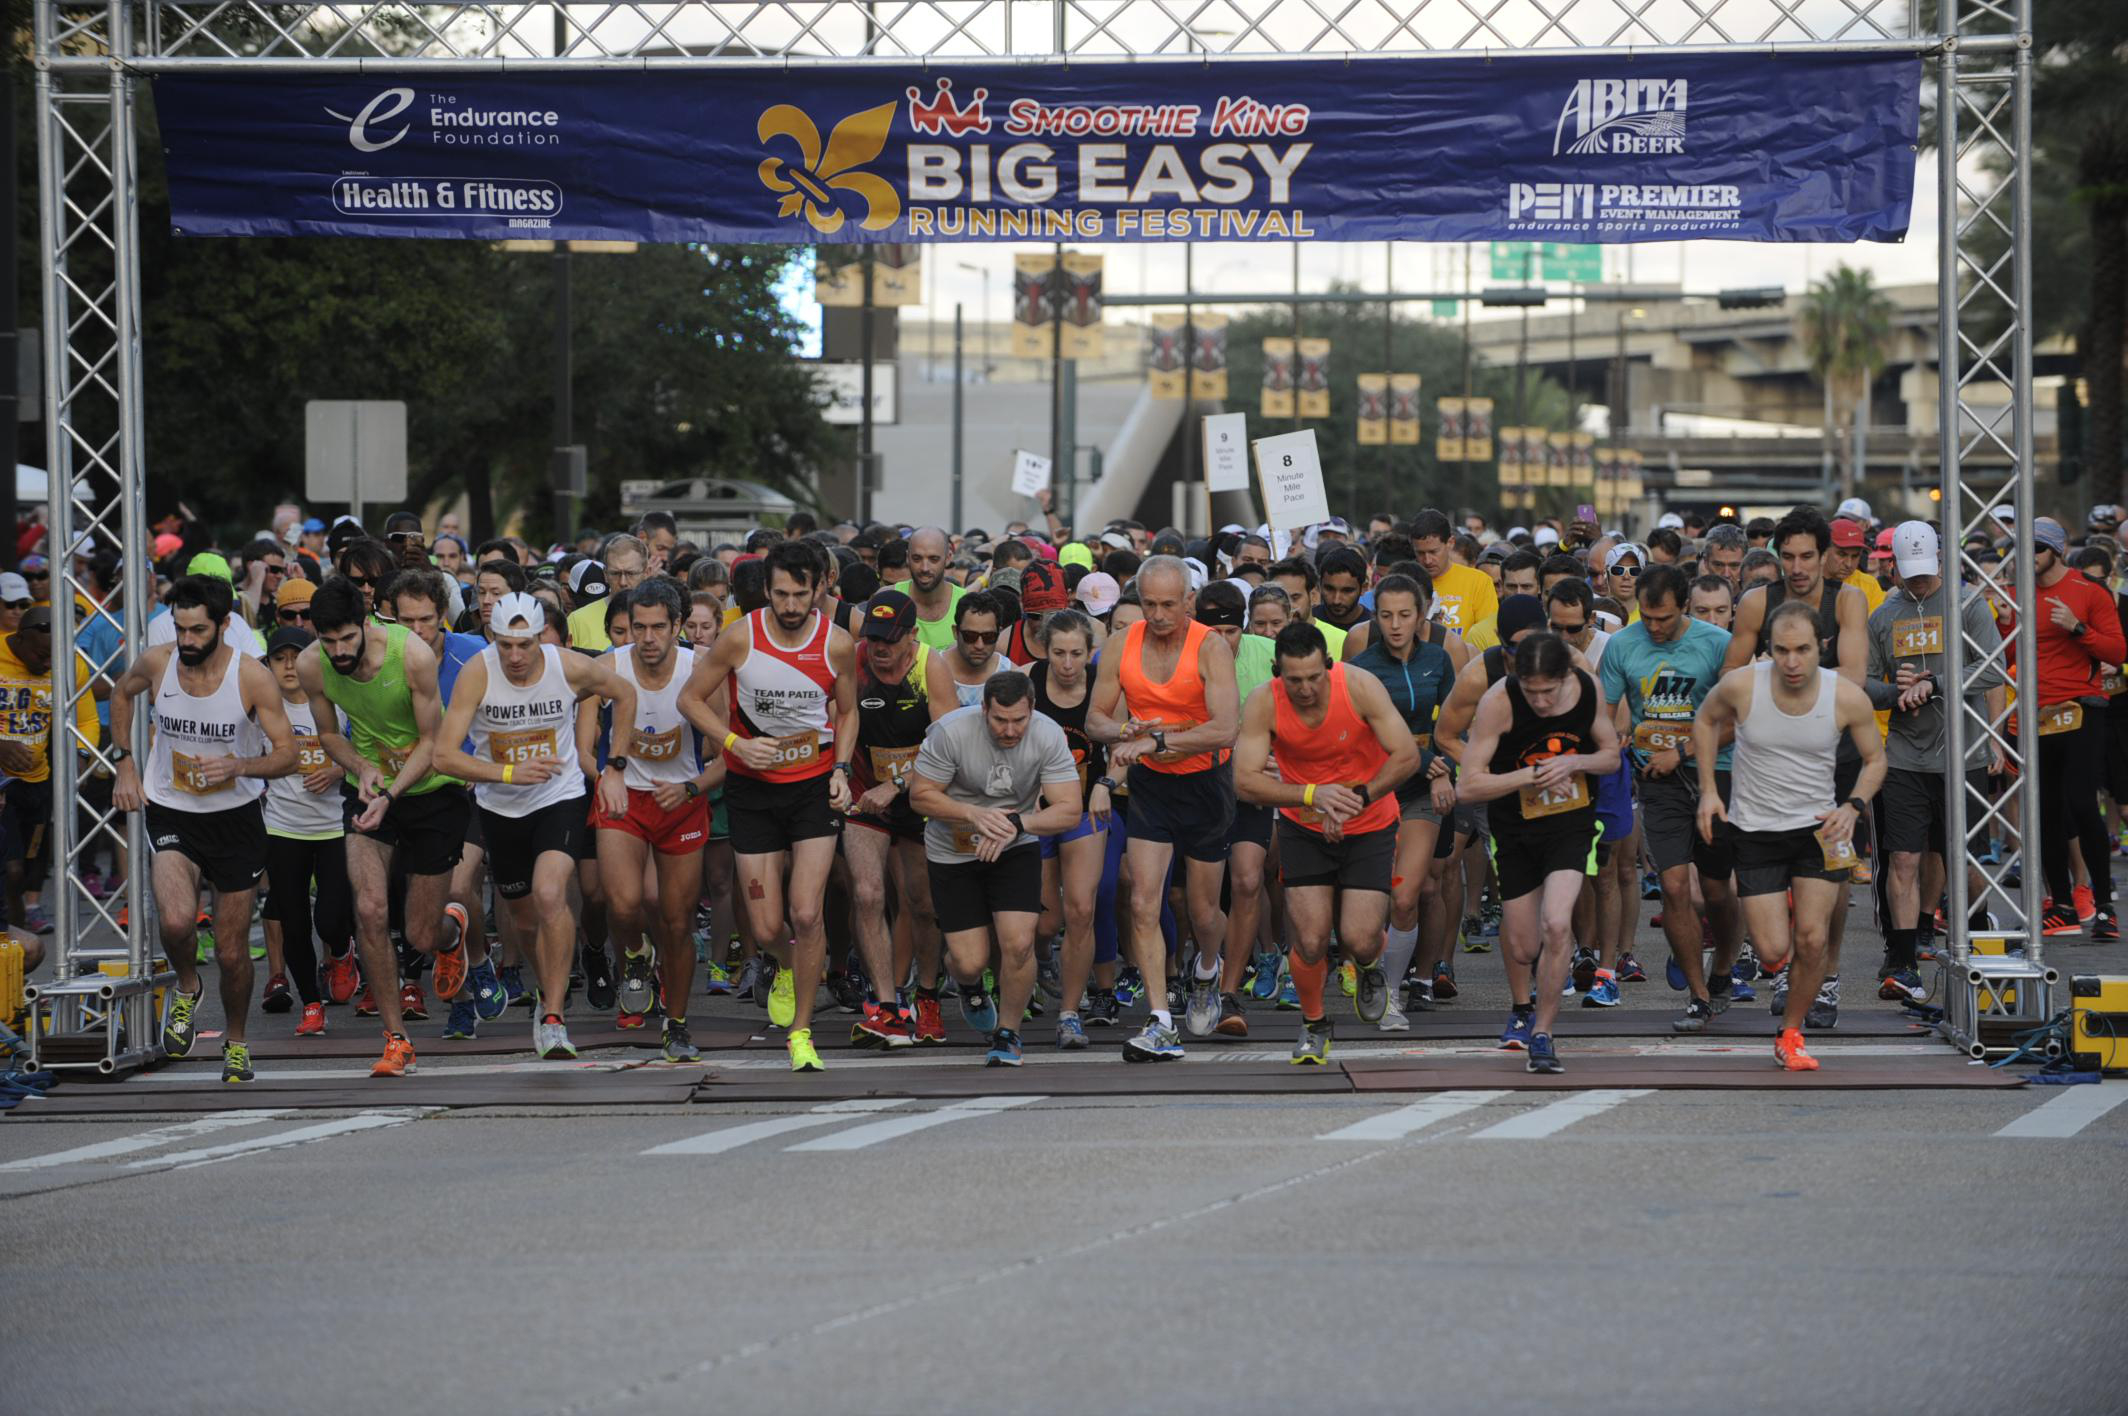 Big Easy Run Fest